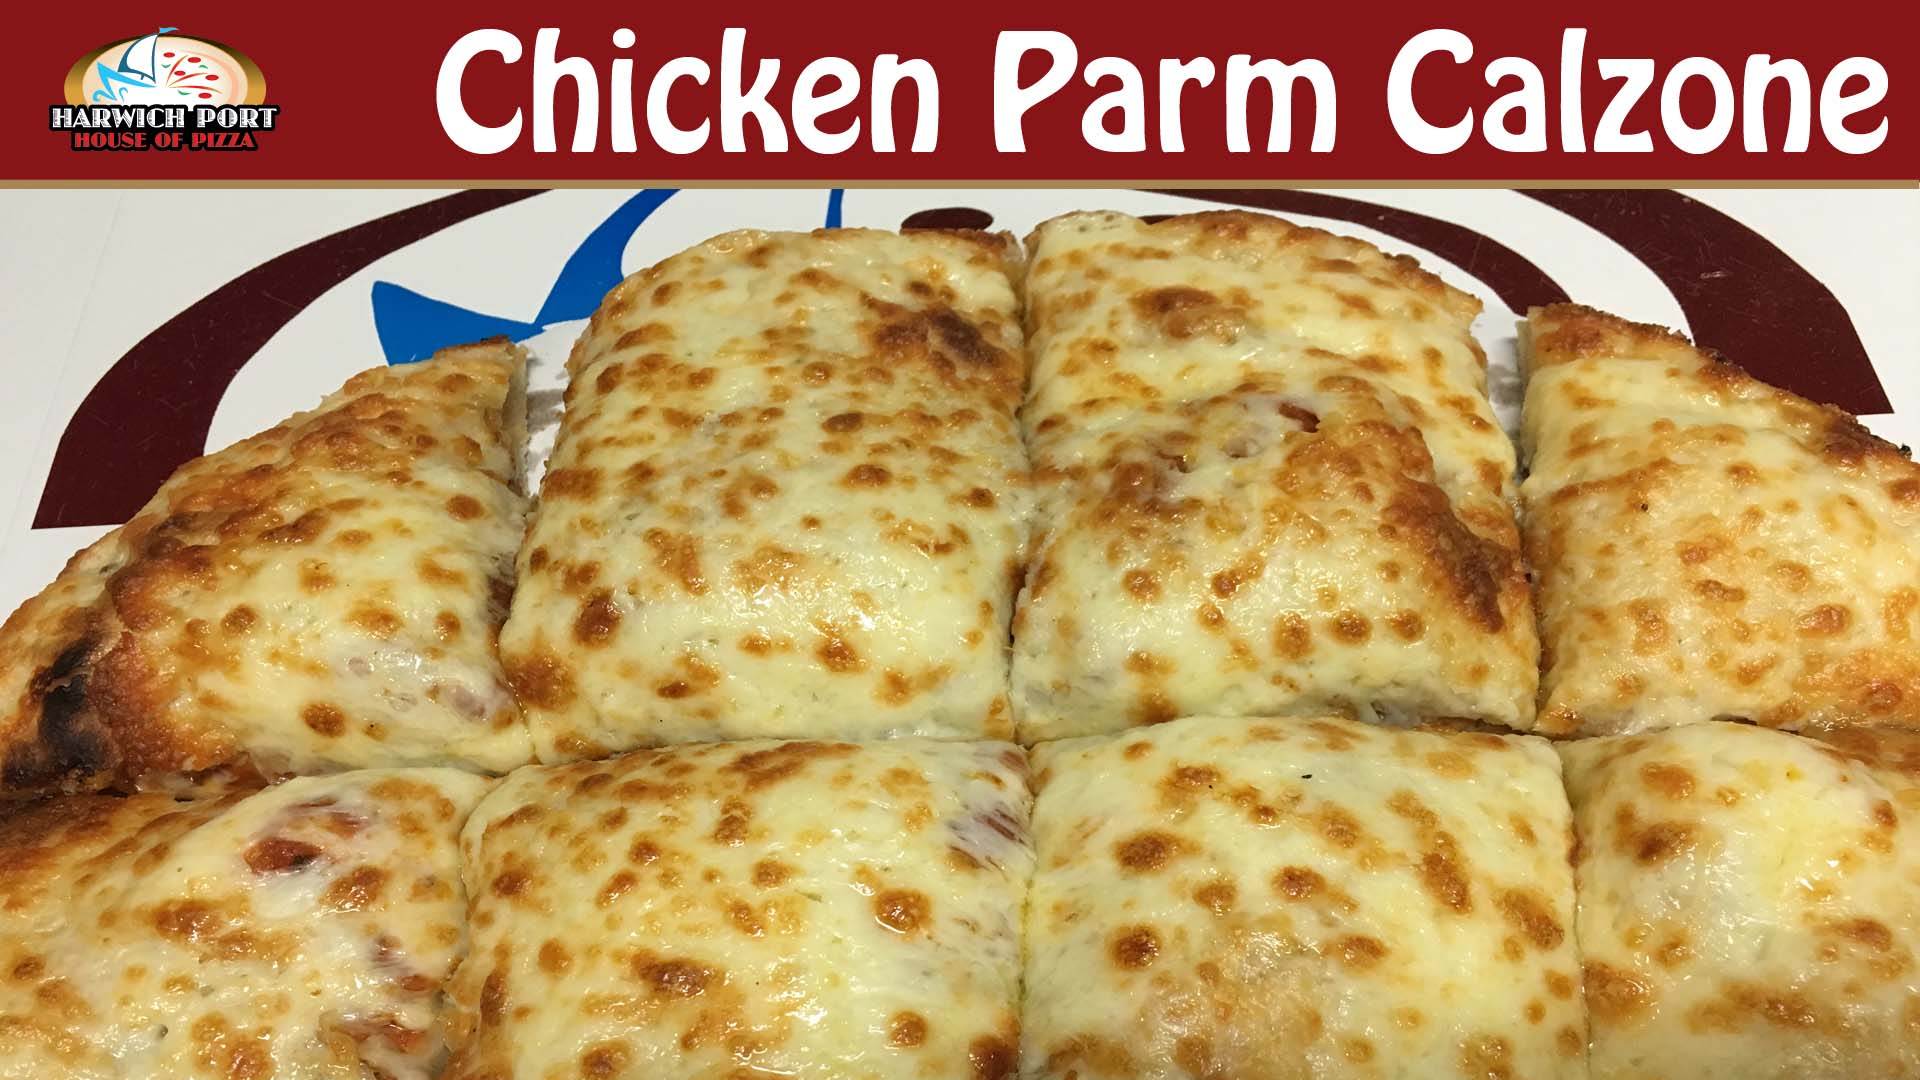 Chicken Parm Calzone